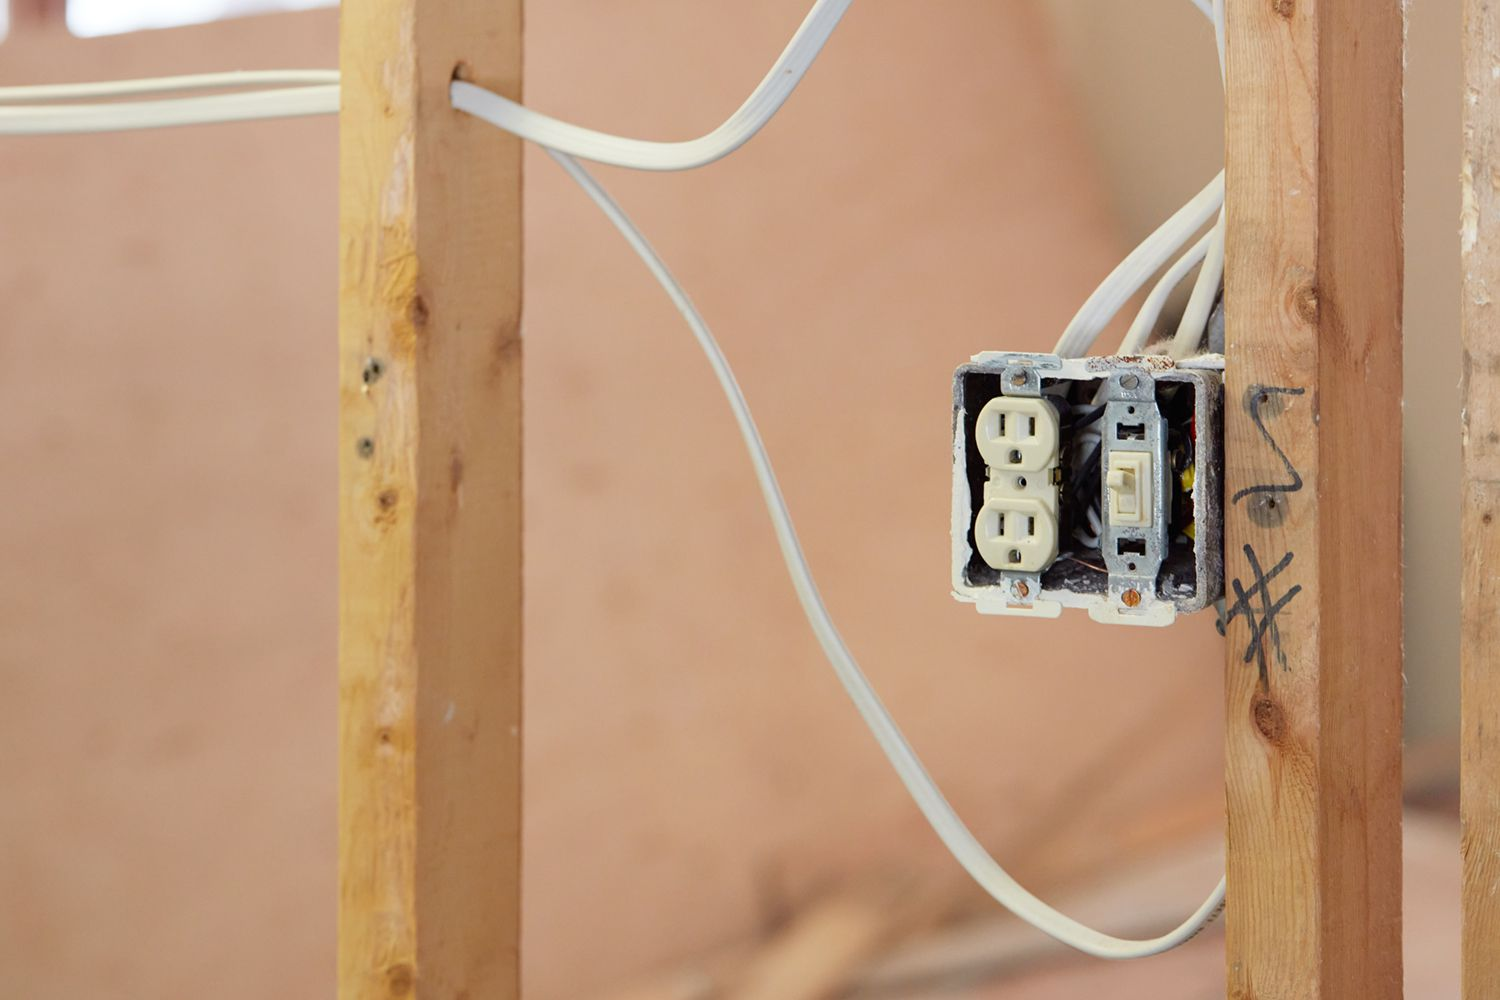 Exposed electrical outlet in between drywall wooden beams and wires